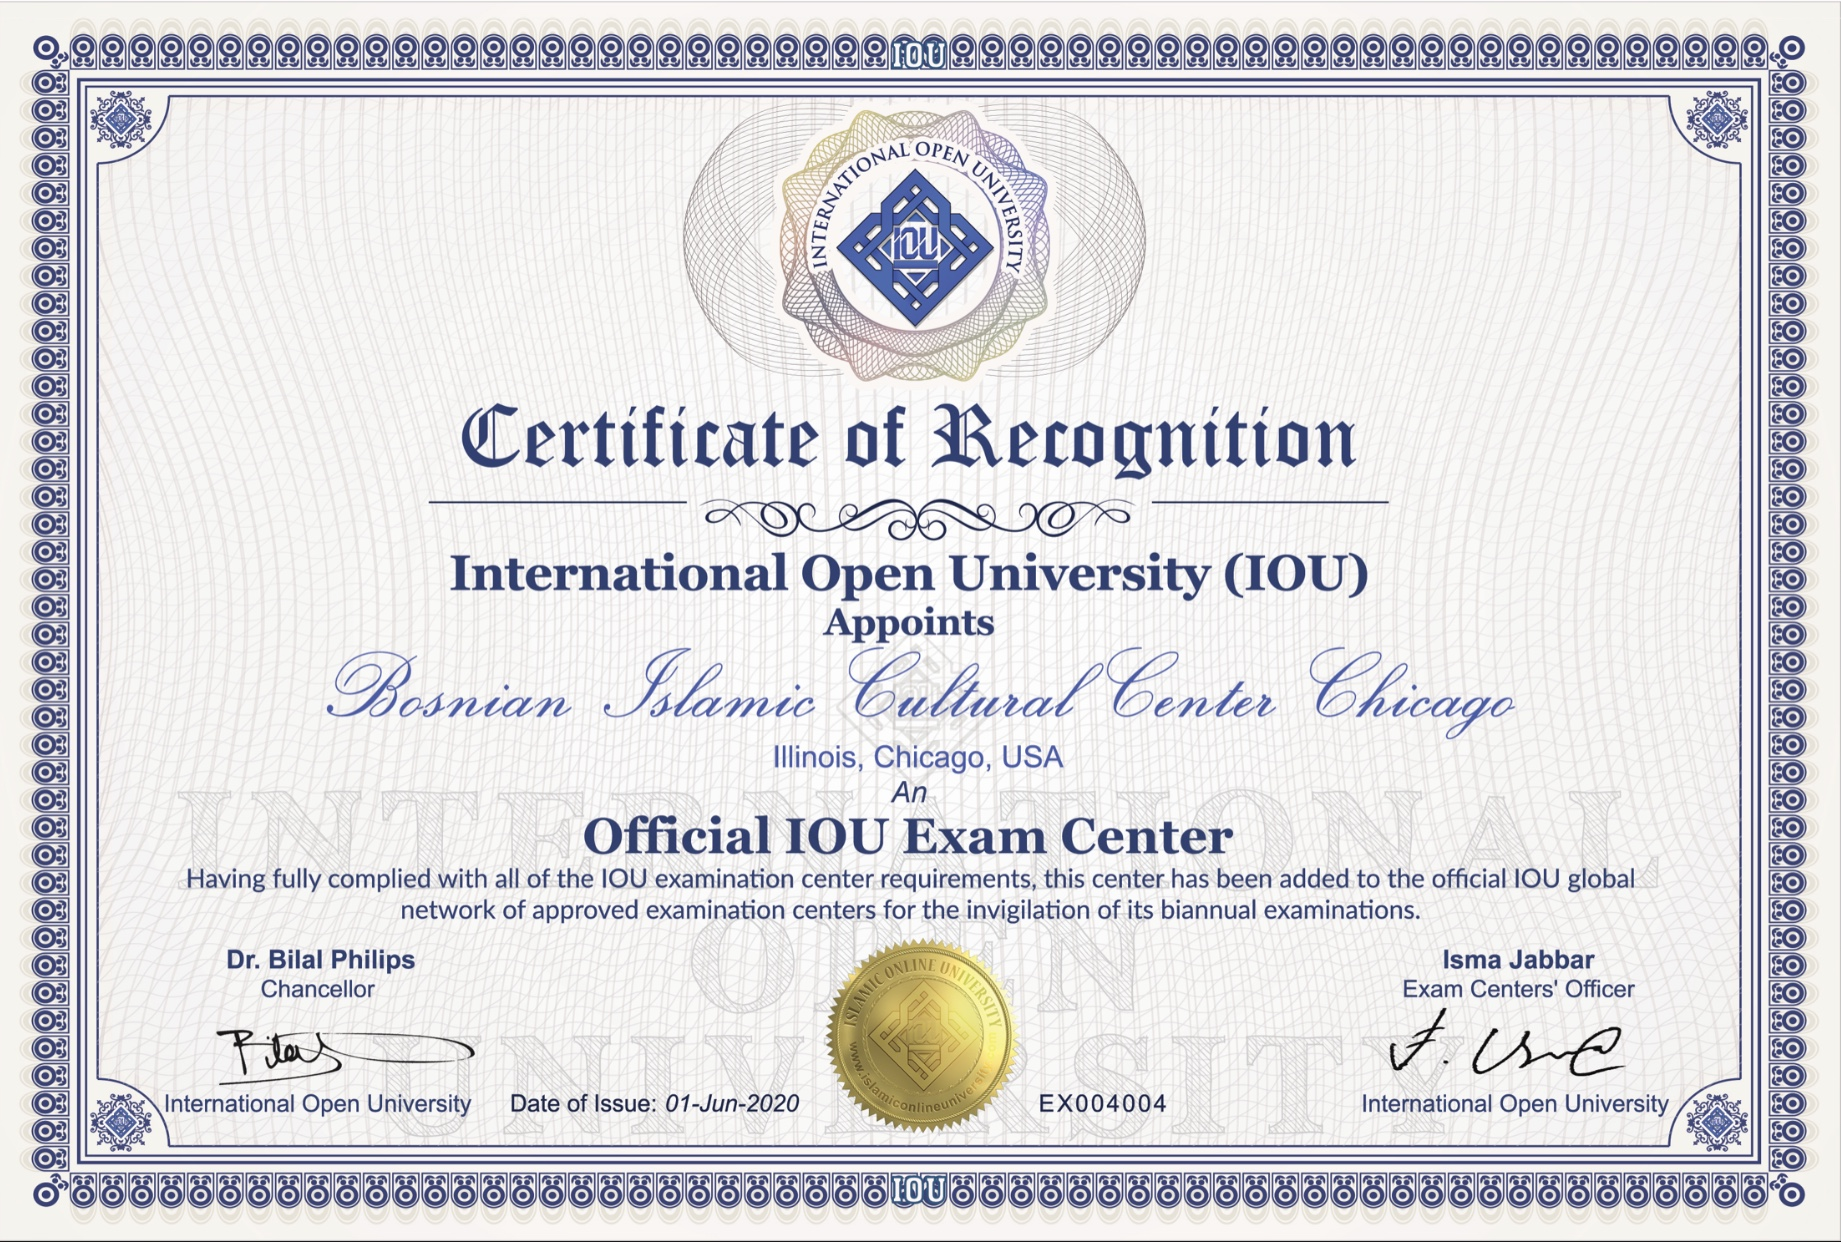 certificate recognition iou international bicc token appreciation exam approved grant wants university